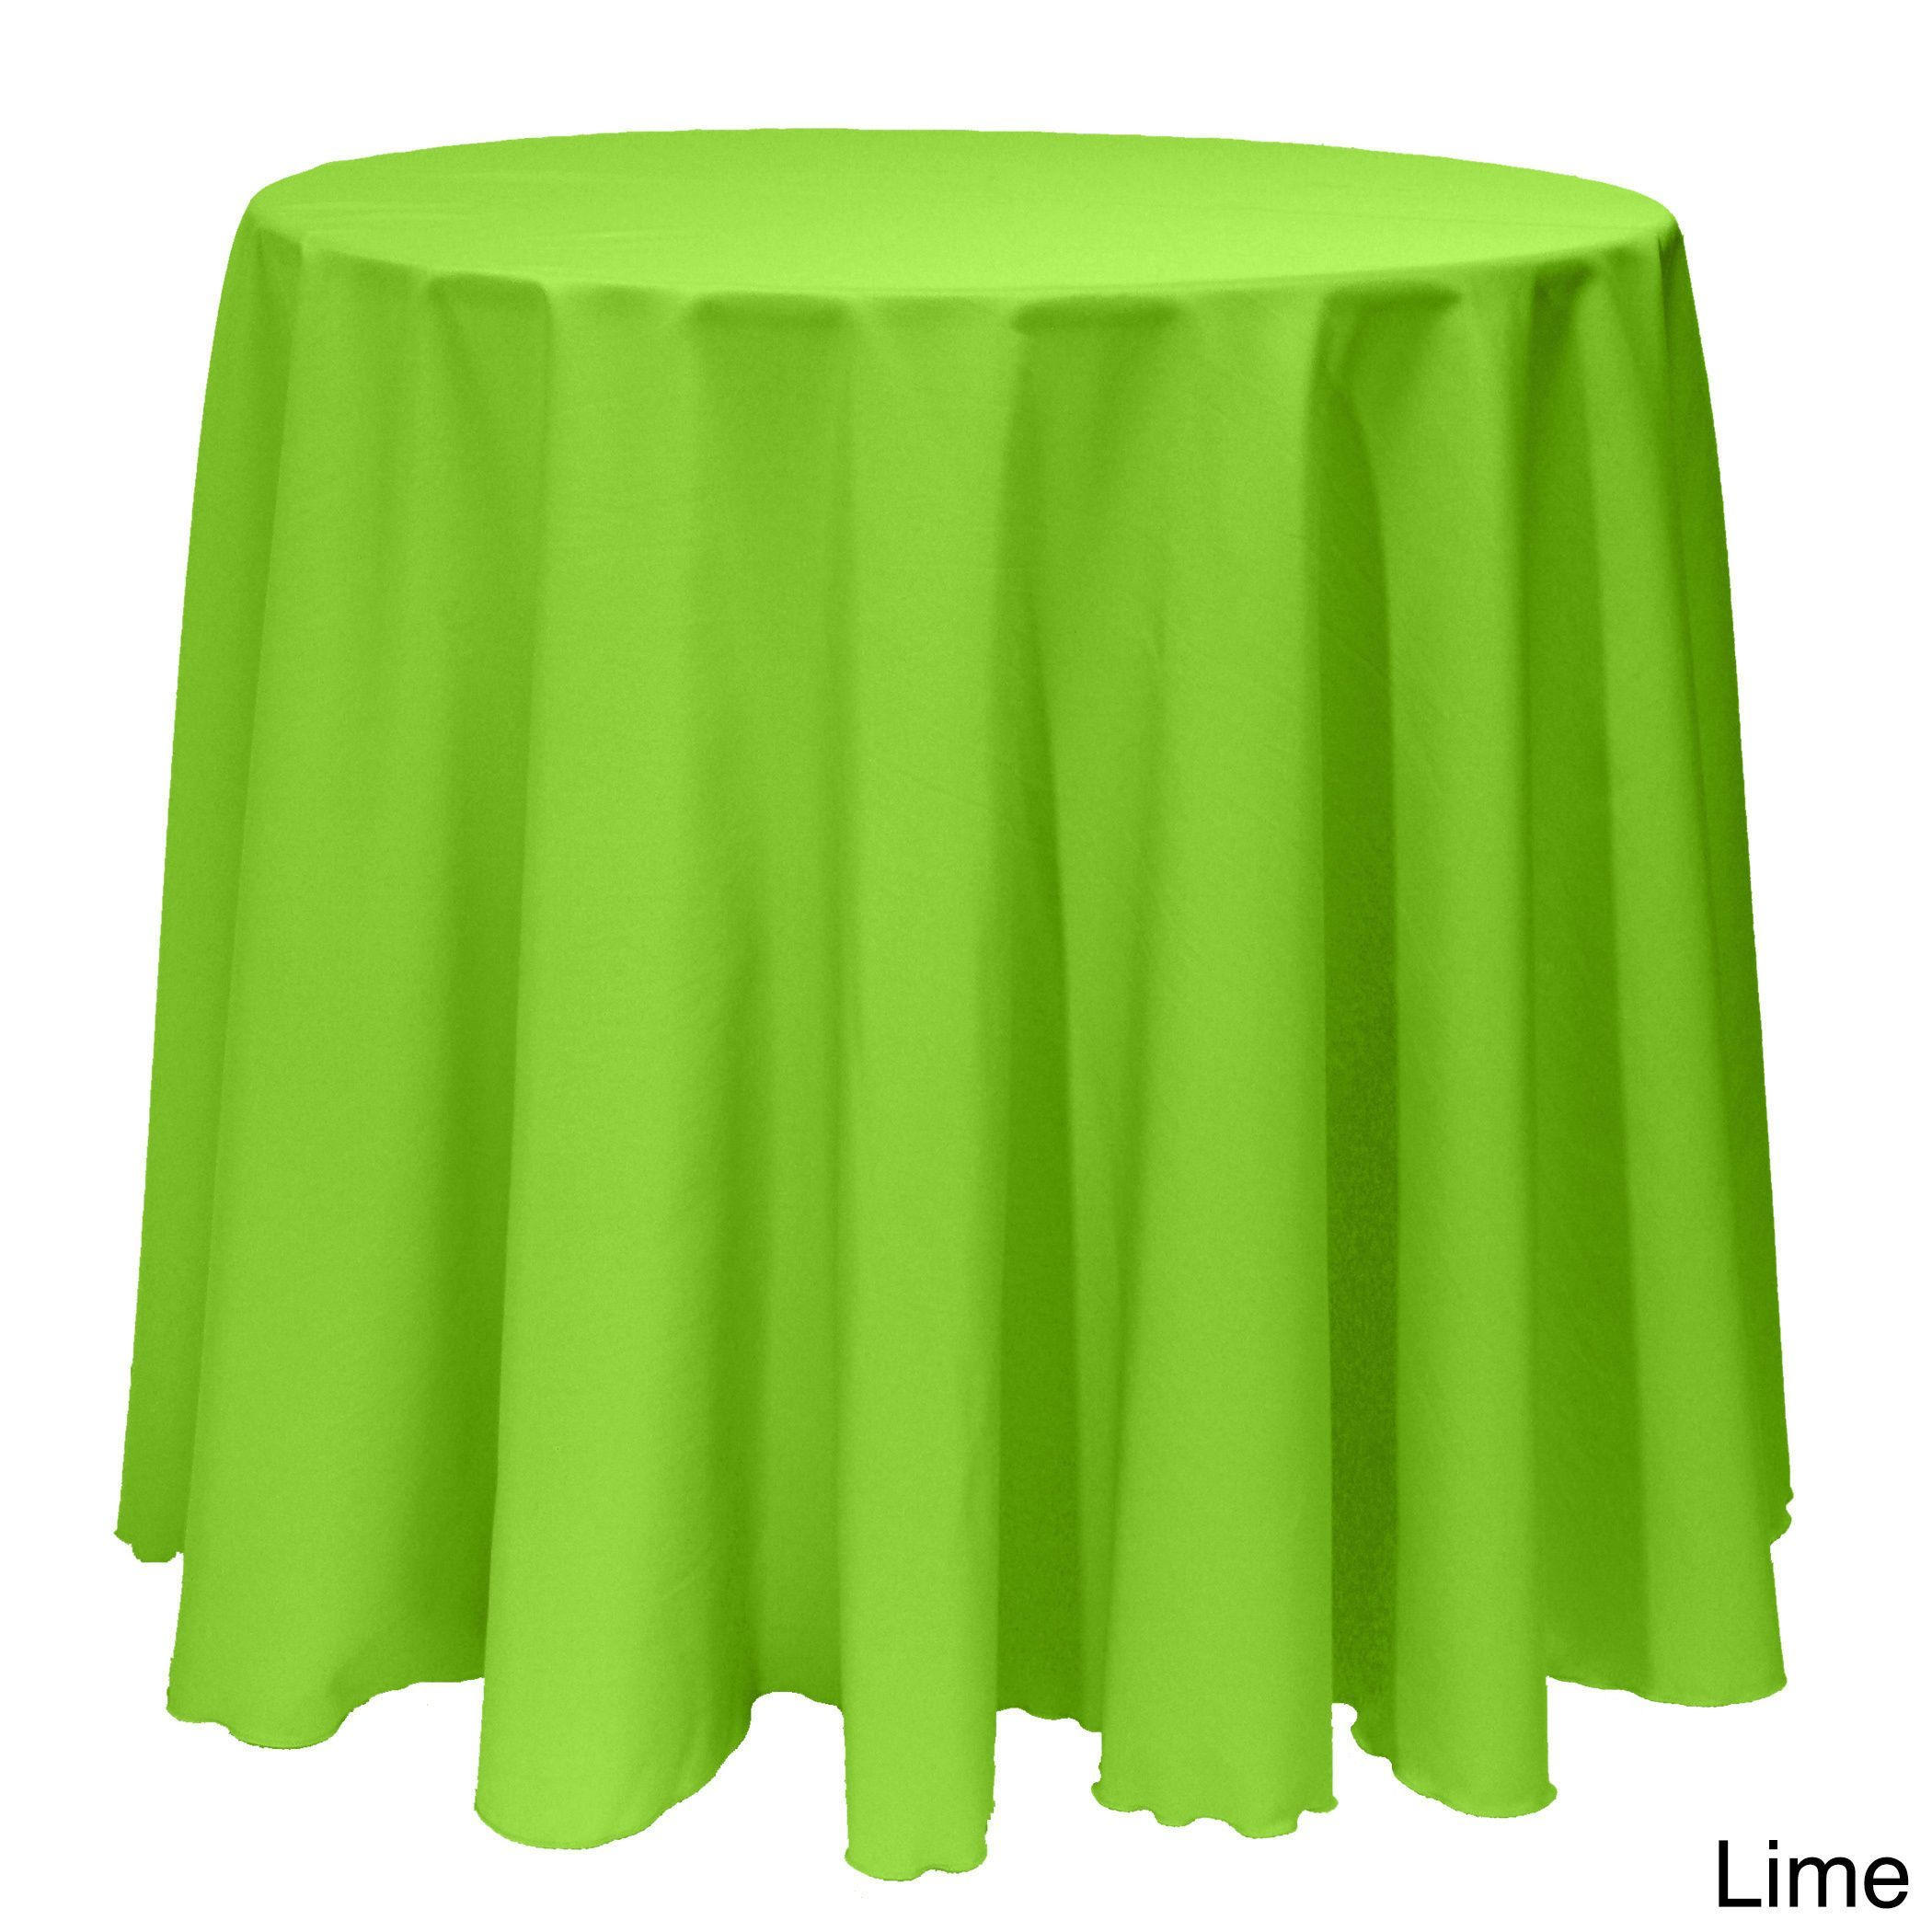 Solid Color 90 Inch Round Vibrant Color Tablecloth   90 (Lime), Green